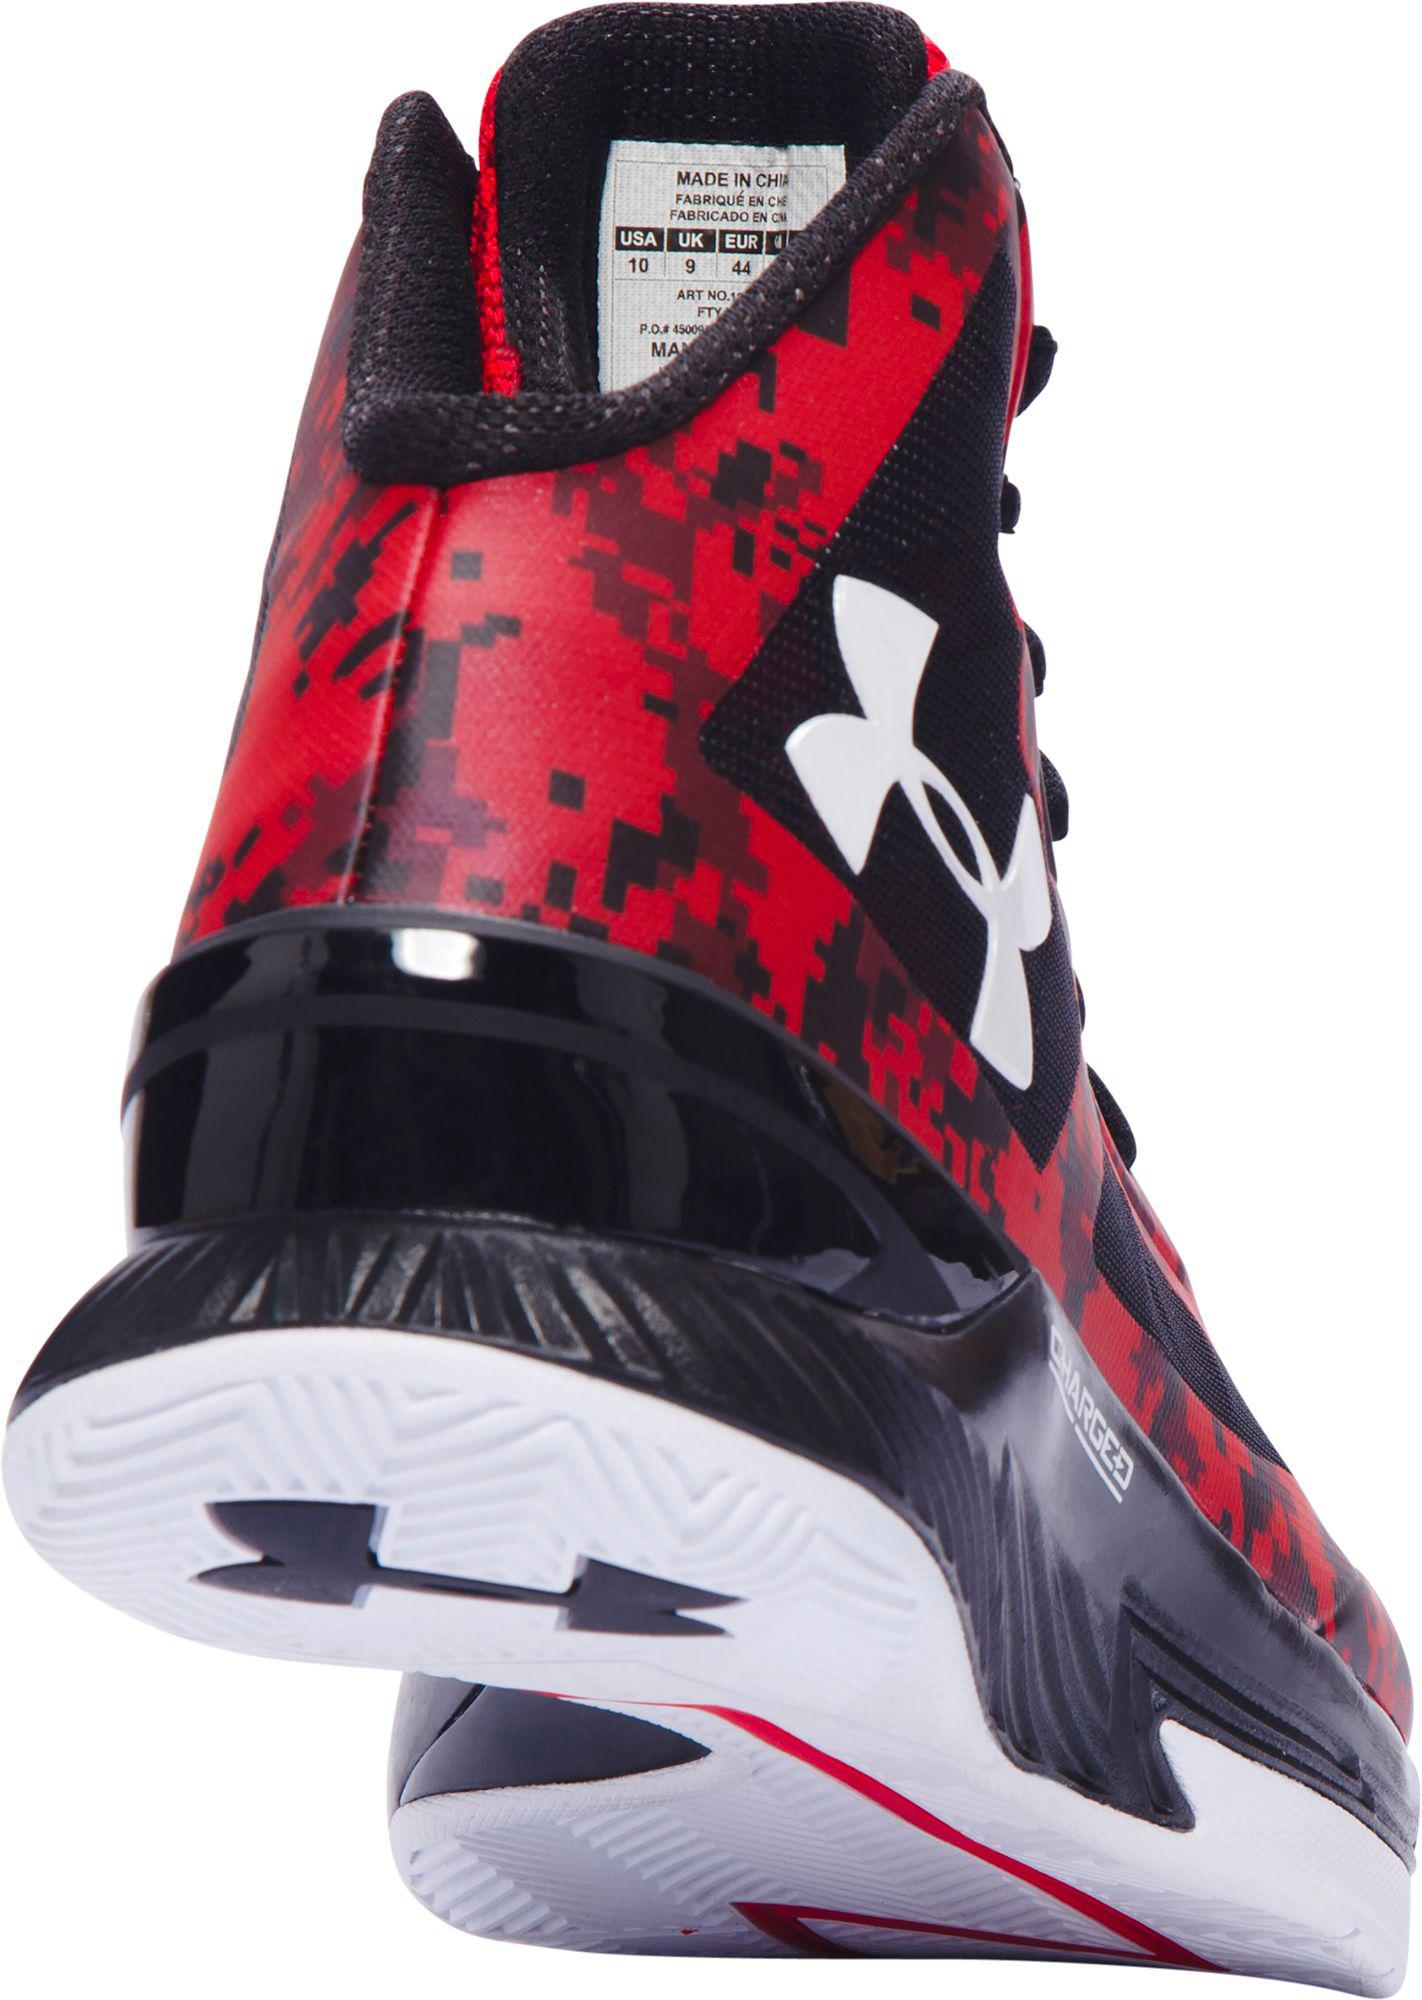 59d0b73ae8a5 Lyst - Under Armour Clutchfit Lightning Basketball Shoes in Red for Men